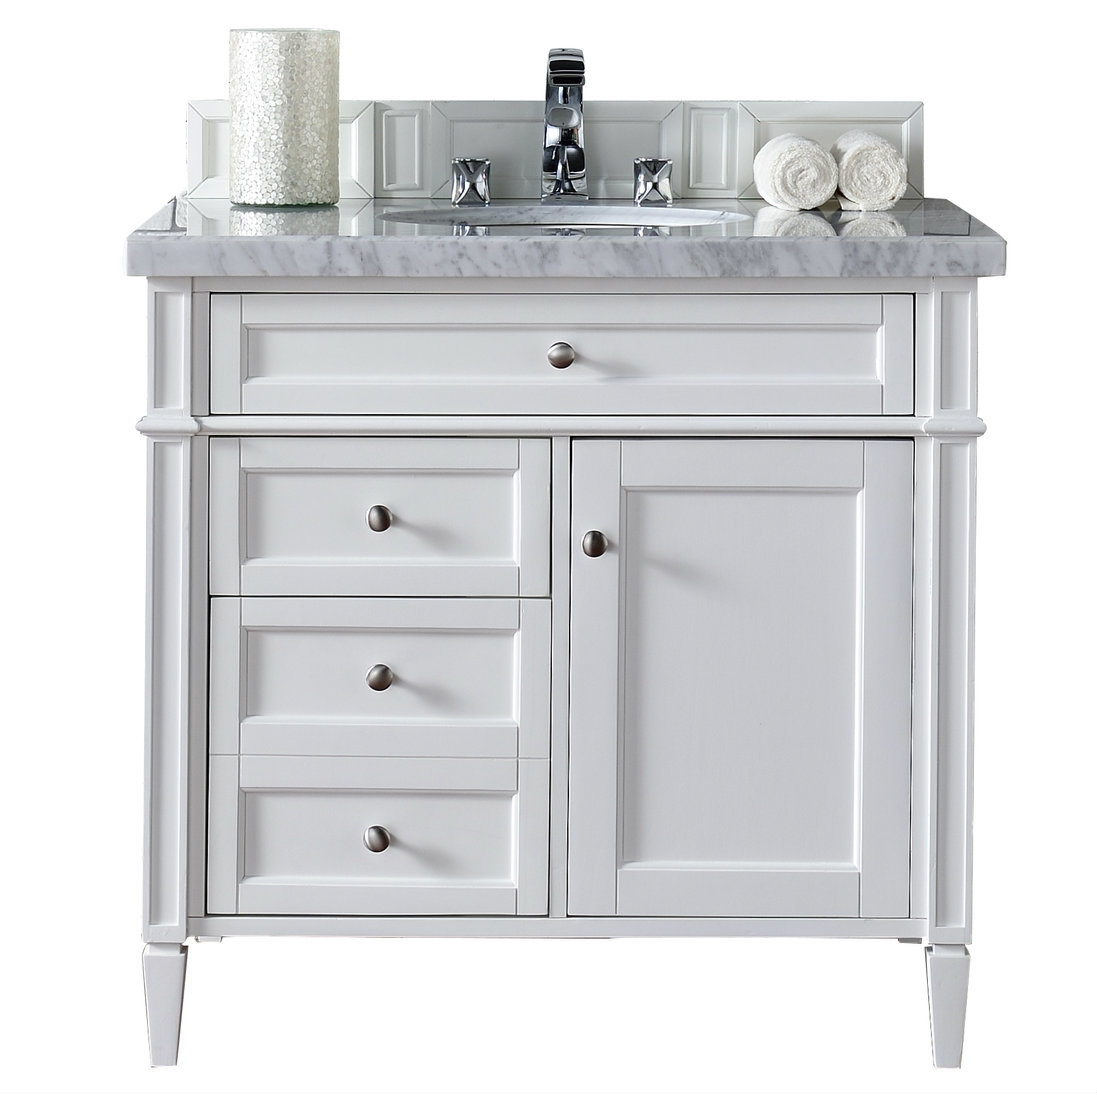 White Bathroom Vanity Ideas Perfect White Bathroom Vanity And Storage Cabinet Ideas